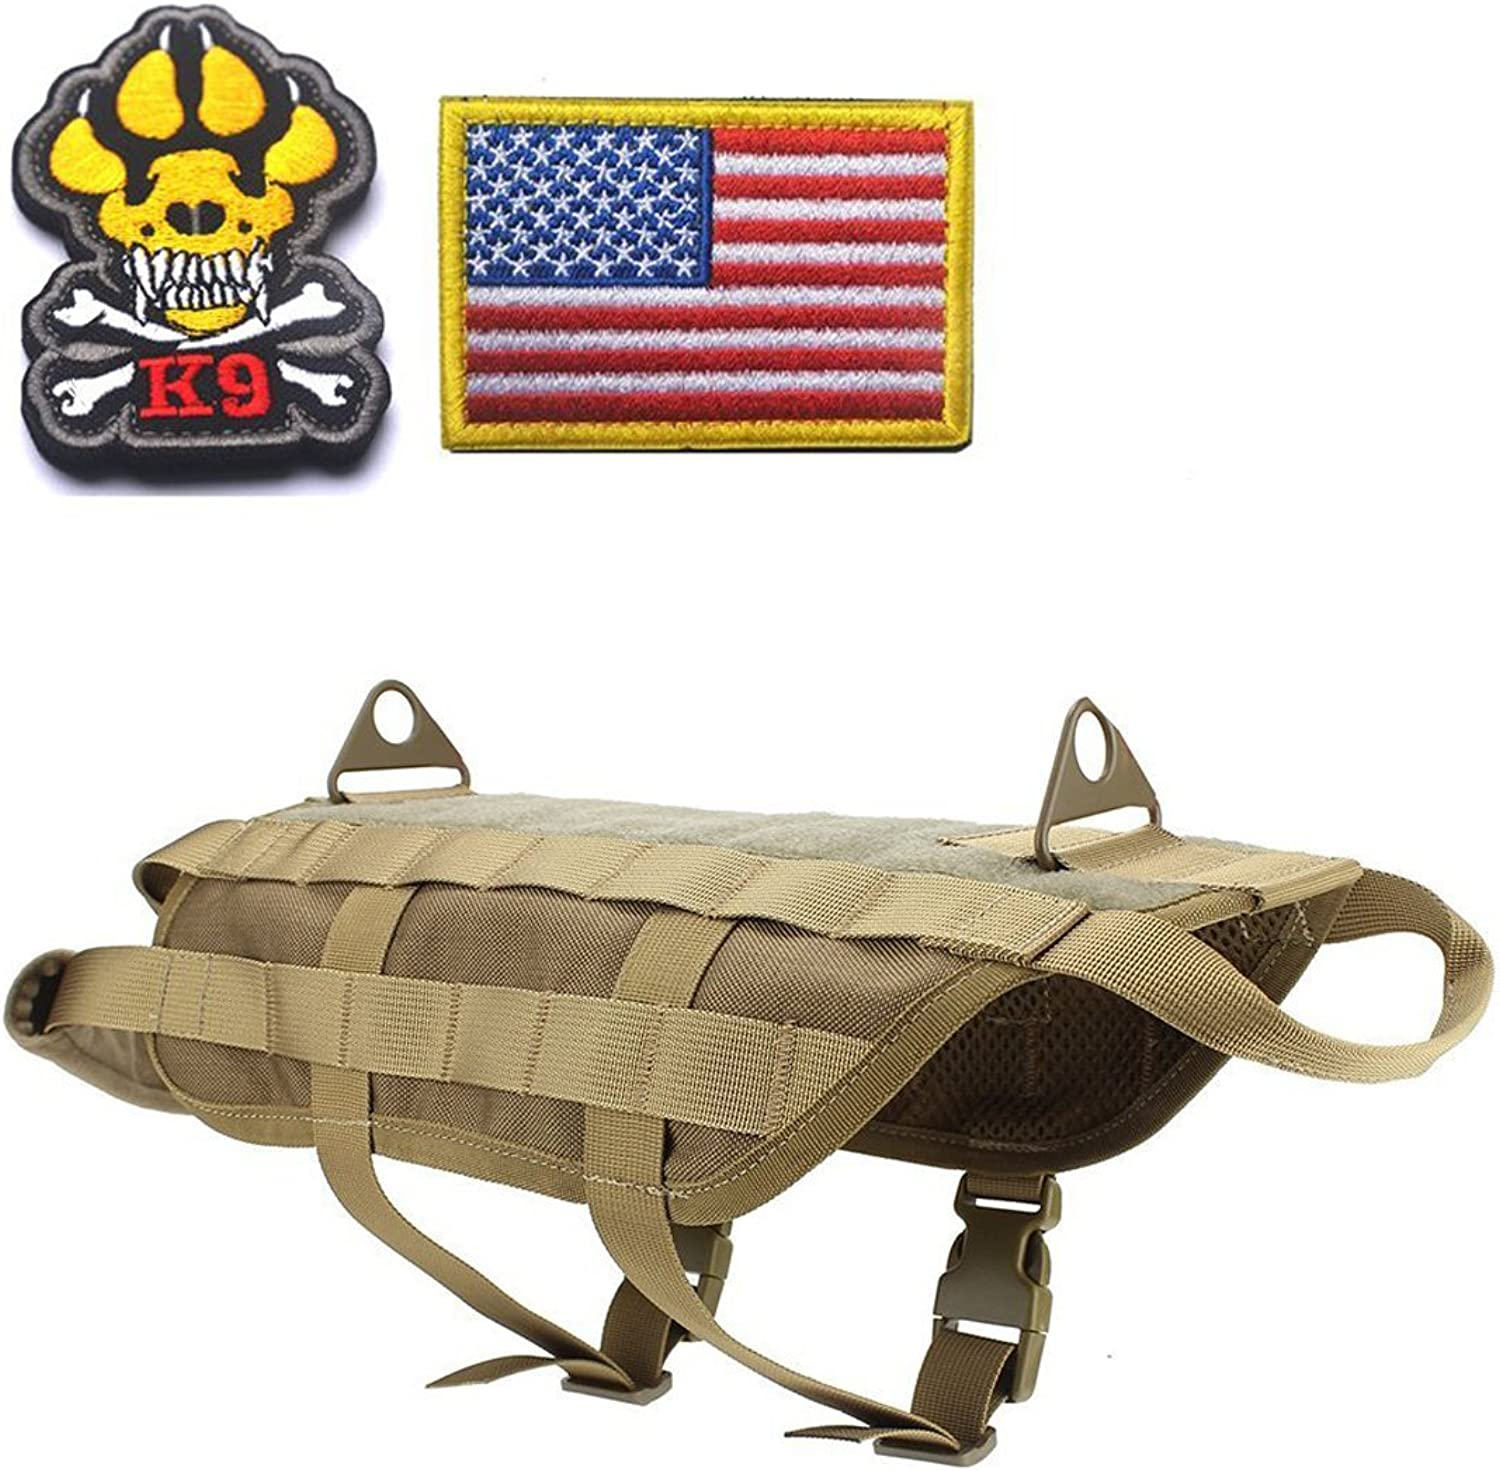 Lifeunion Tactical Police Military Dog Training Molle K9 Vest Harness for Training Hiking